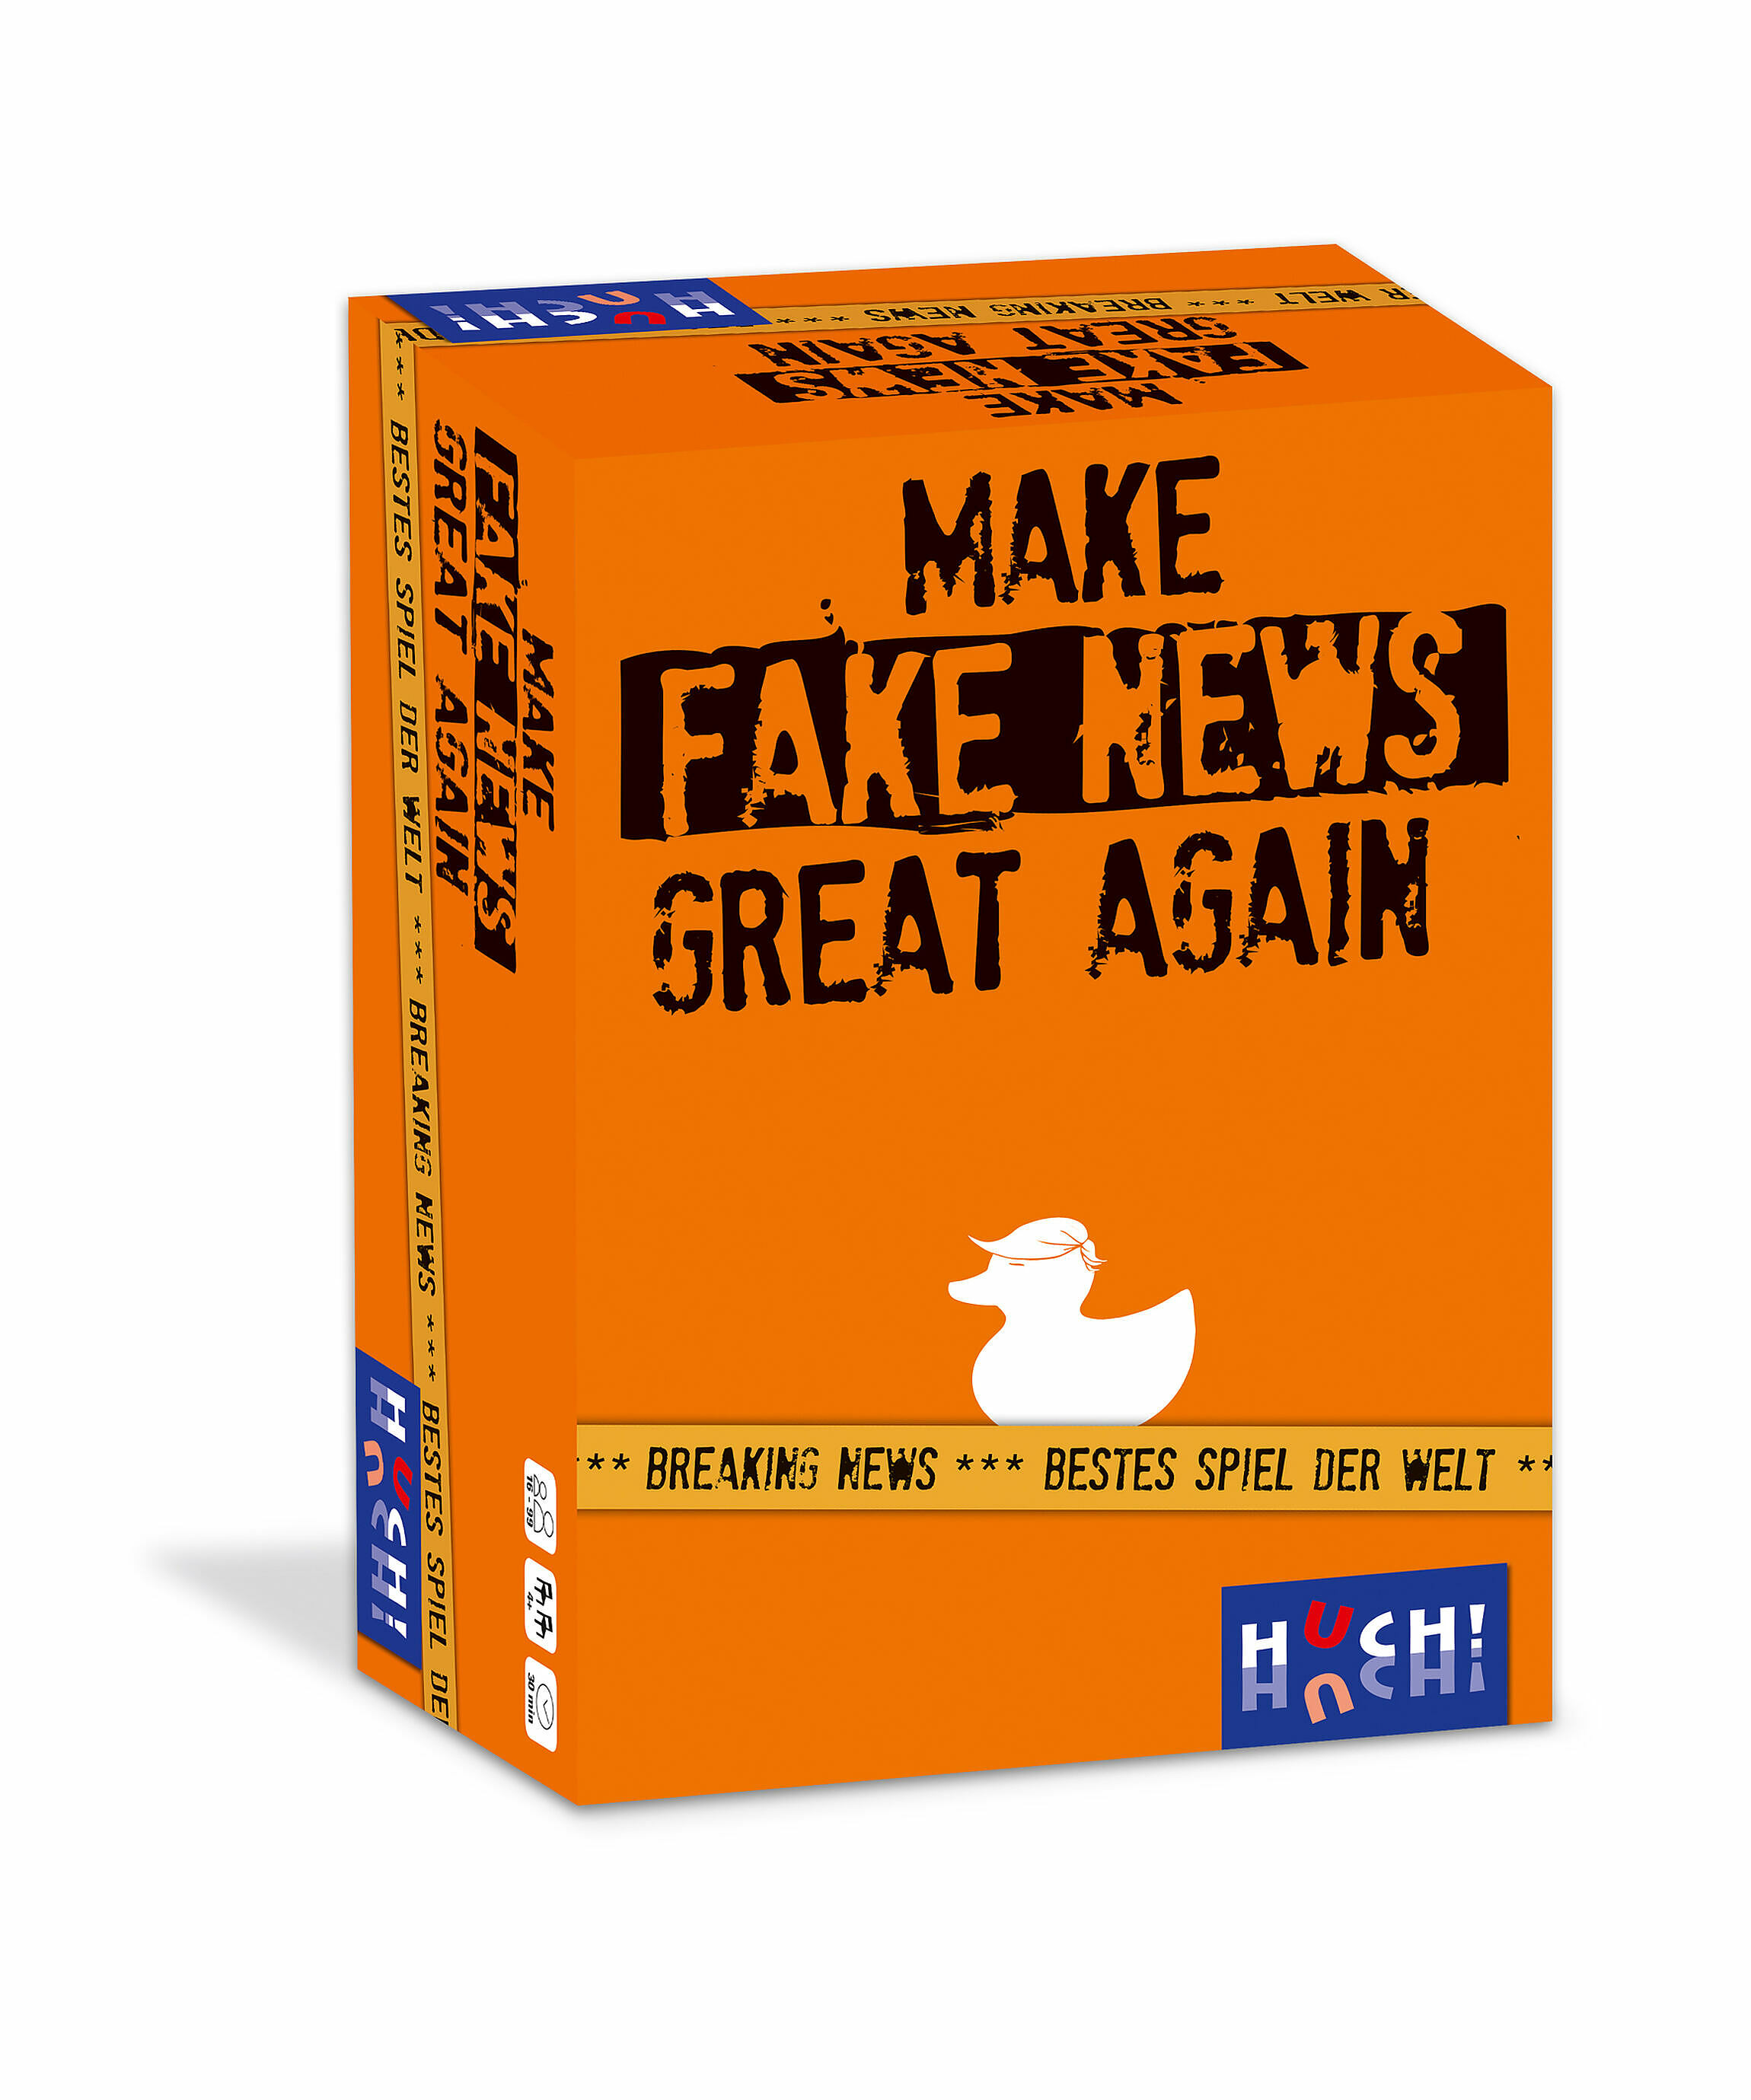 Make Fake News Great Again